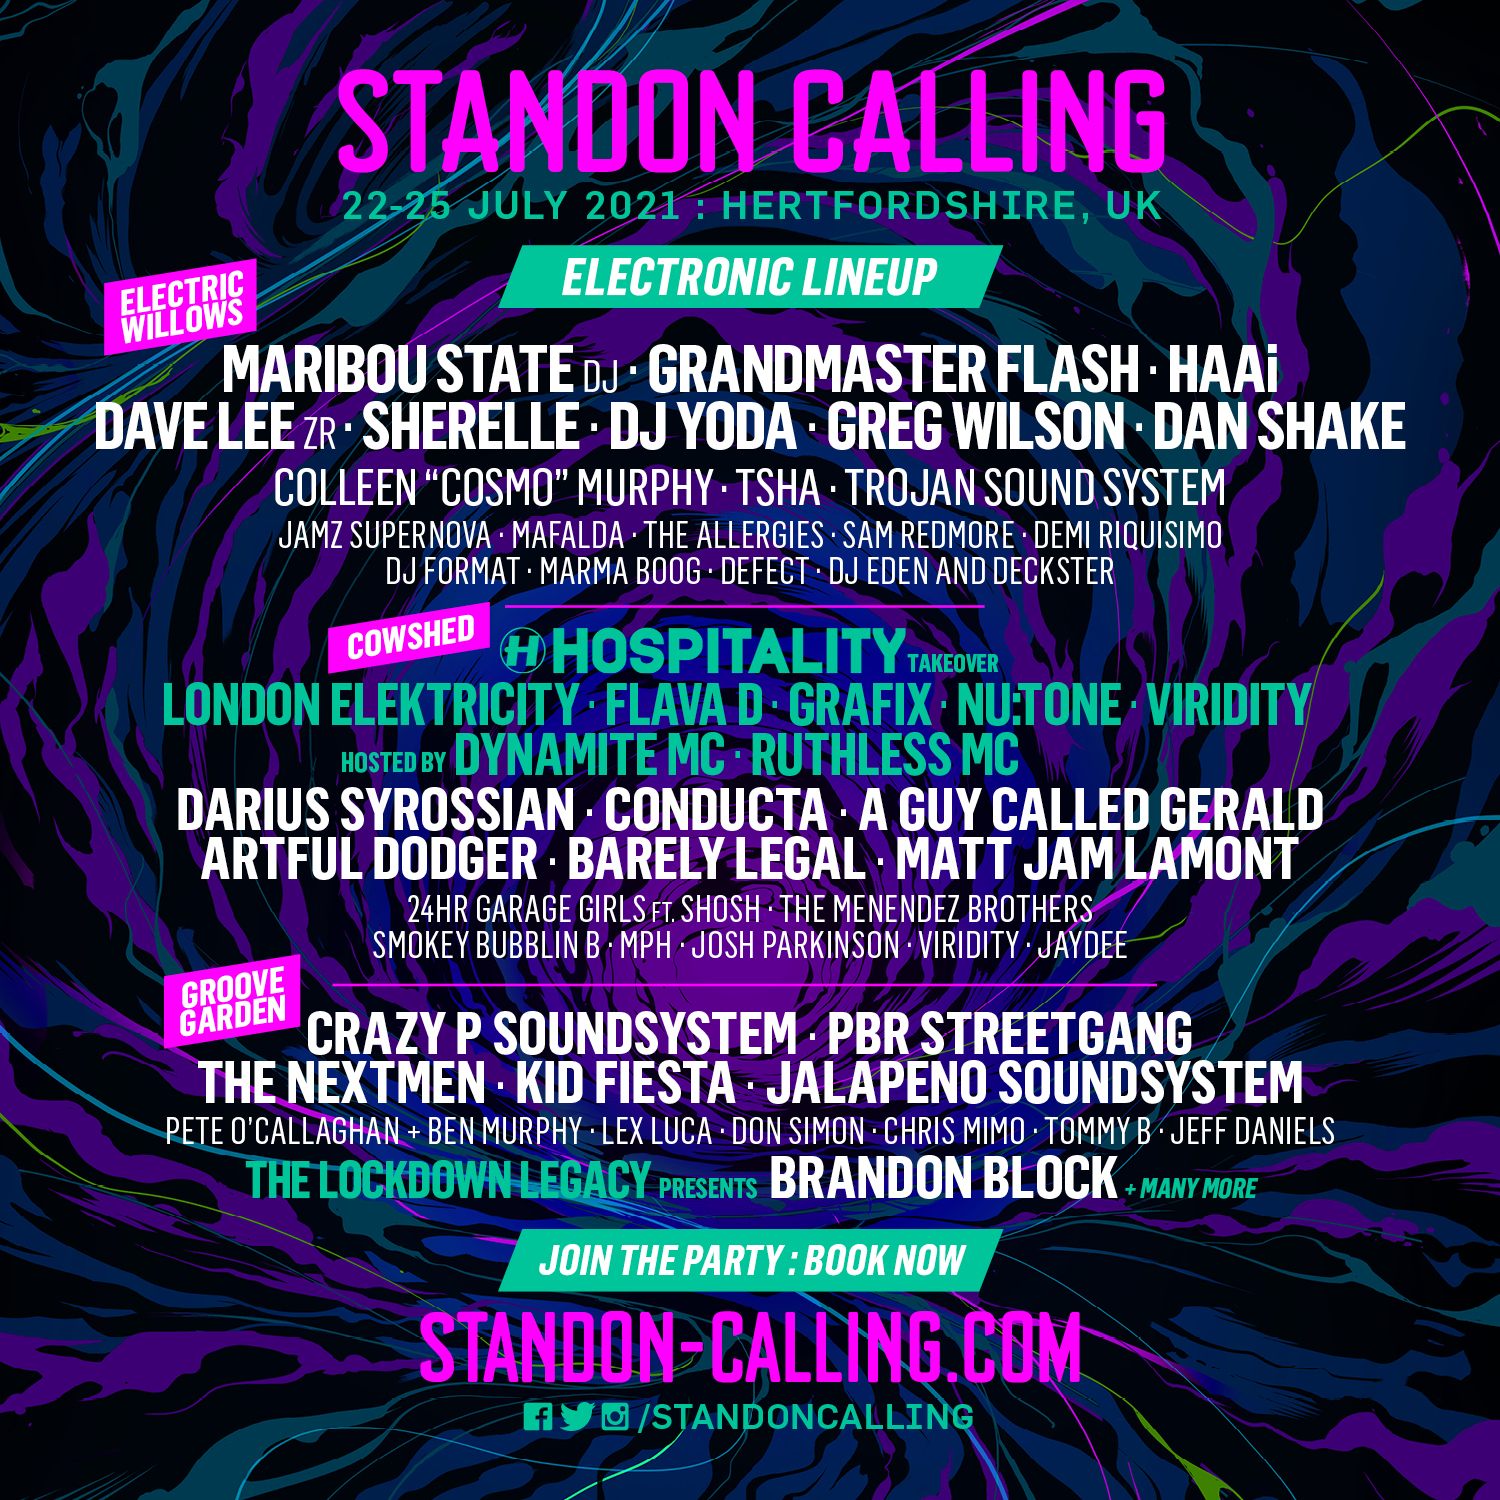 Standon Calling: Just Announced - Full Electronic Line Up! 2